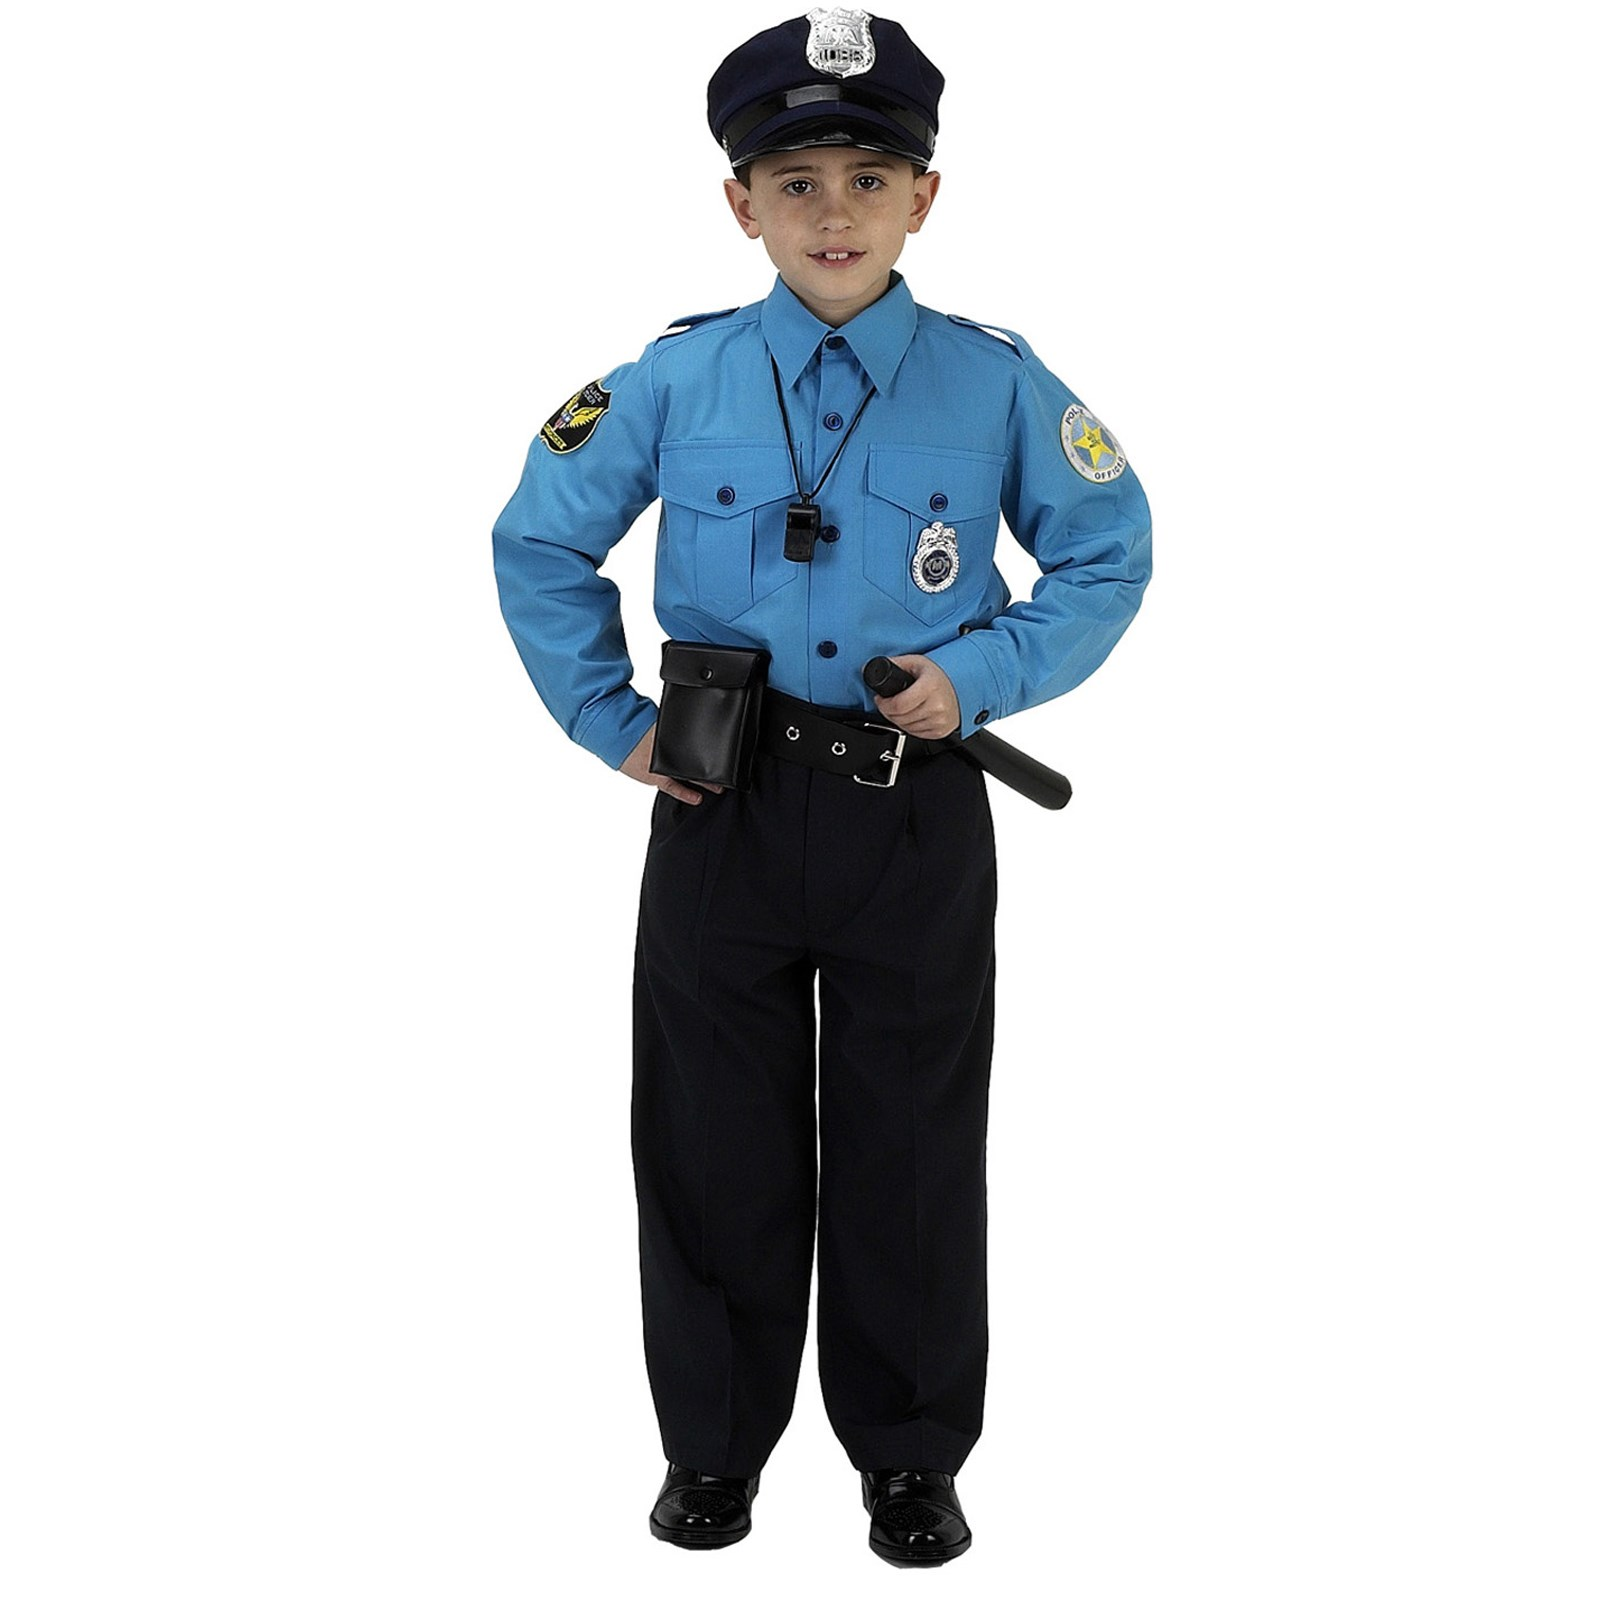 Jr. Police Officer Suit Child Costume Medium (8-10)